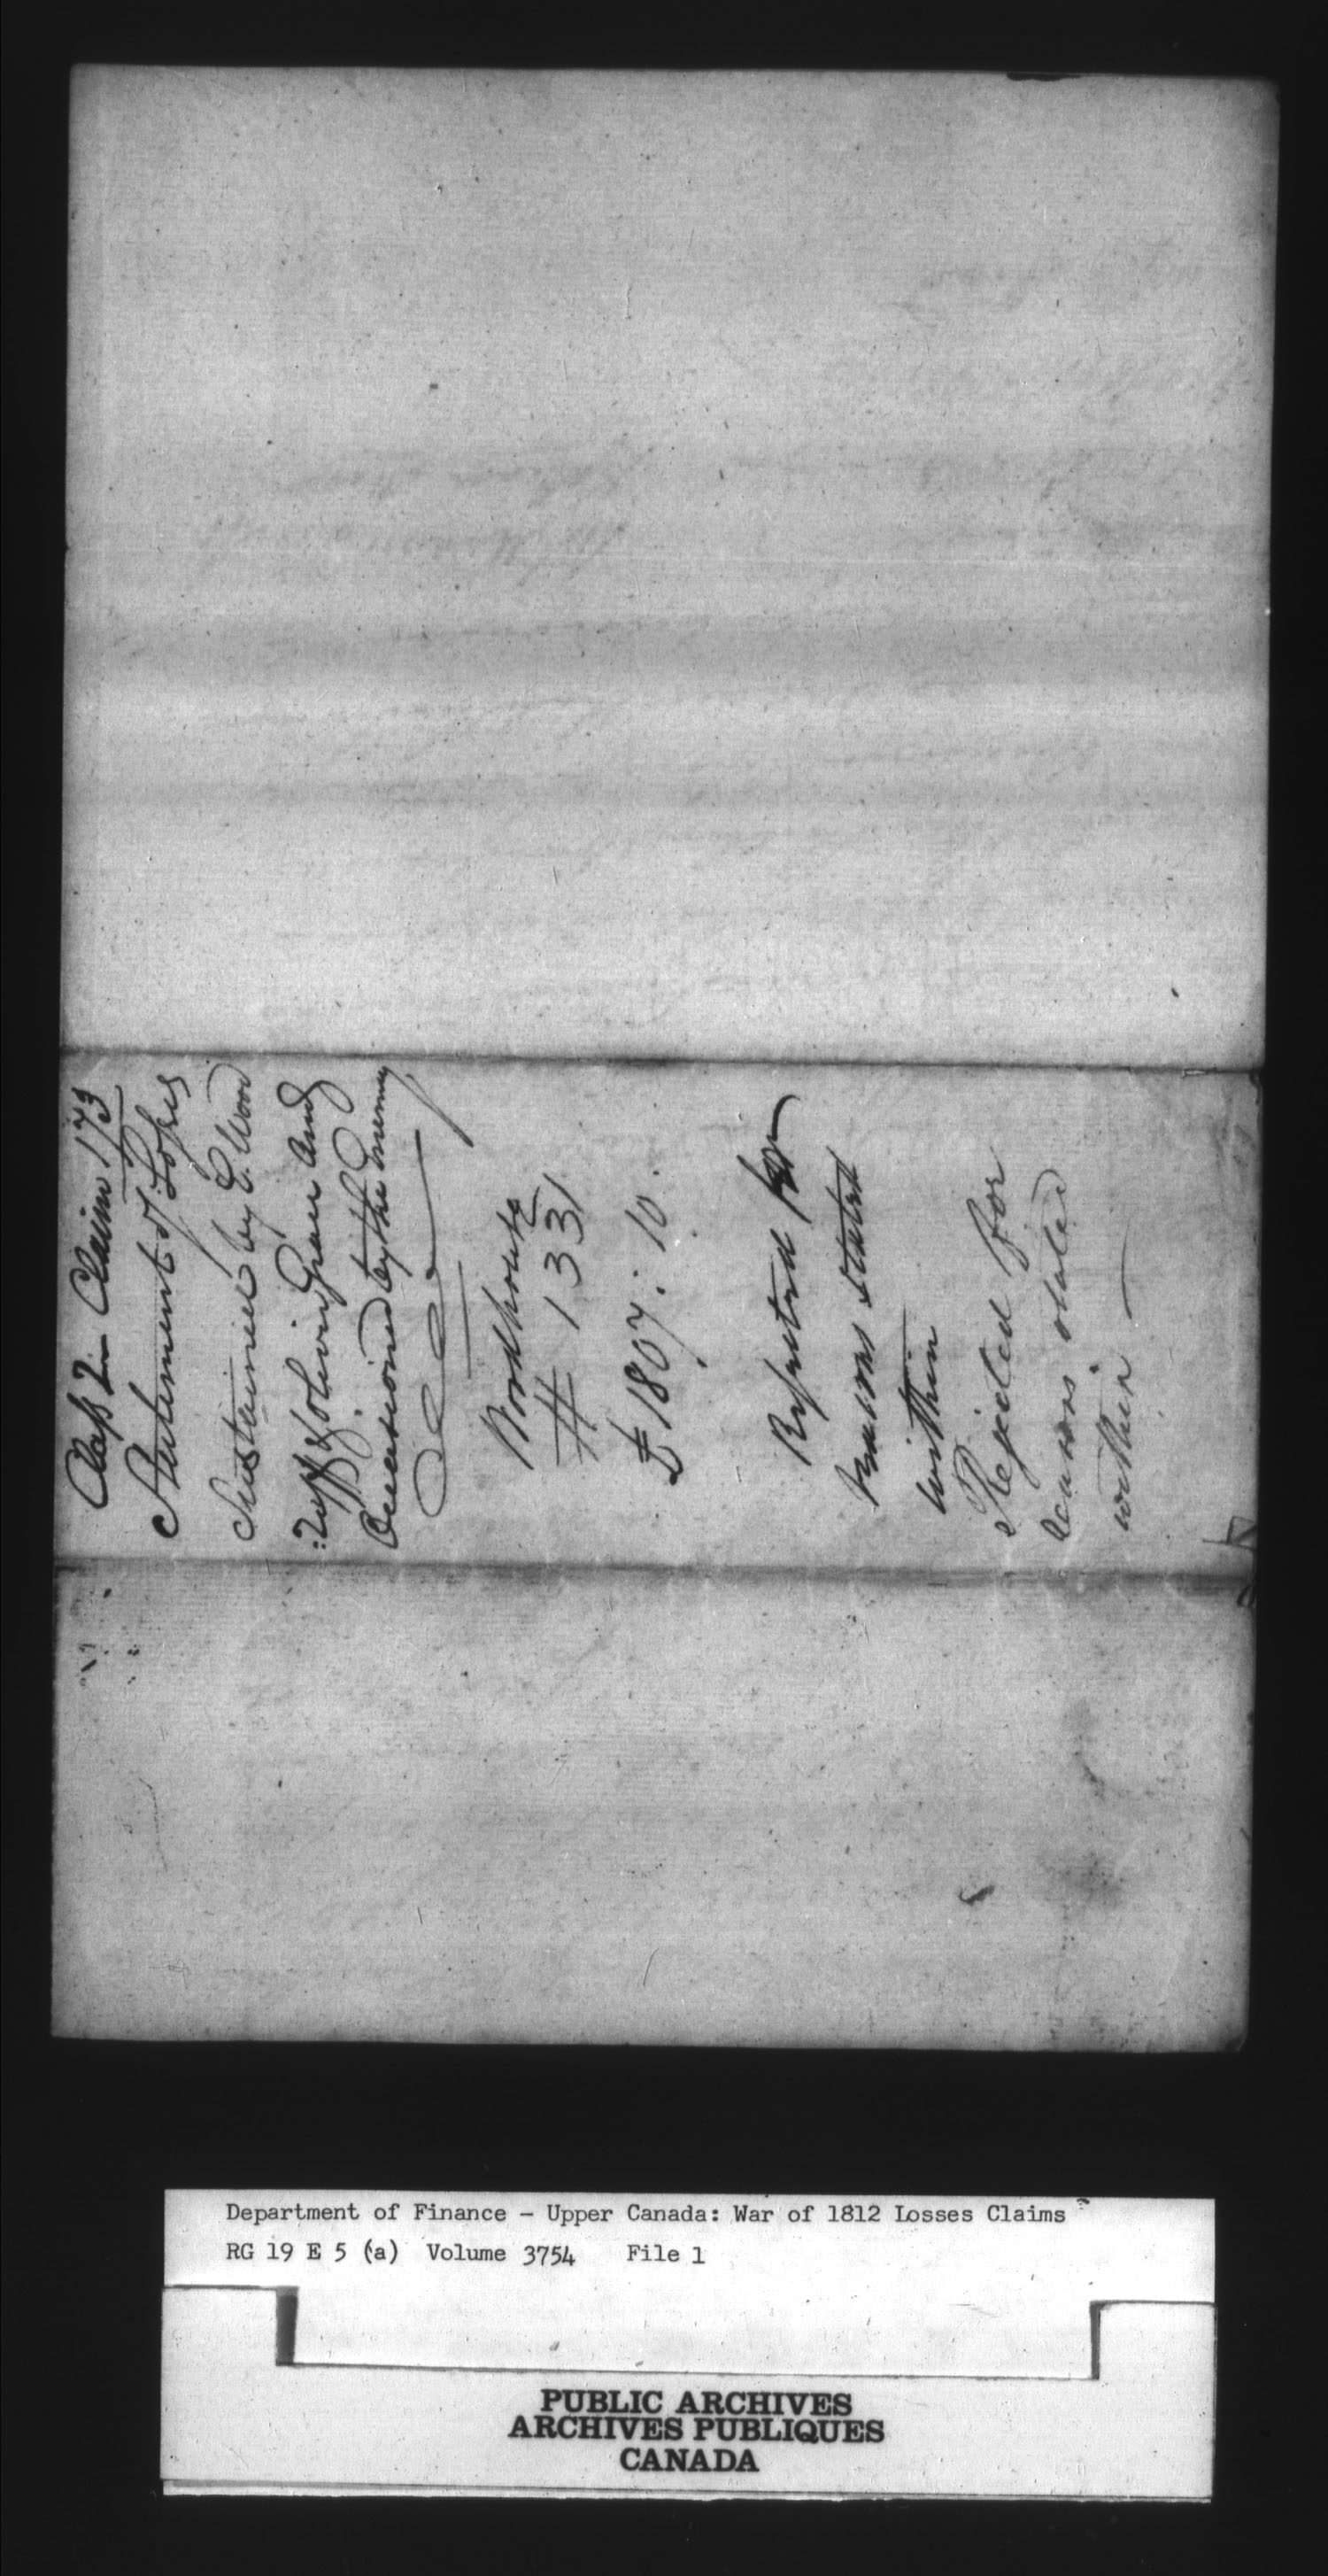 Title: War of 1812: Board of Claims for Losses, 1813-1848, RG 19 E5A - Mikan Number: 139215 - Microform: t-1136